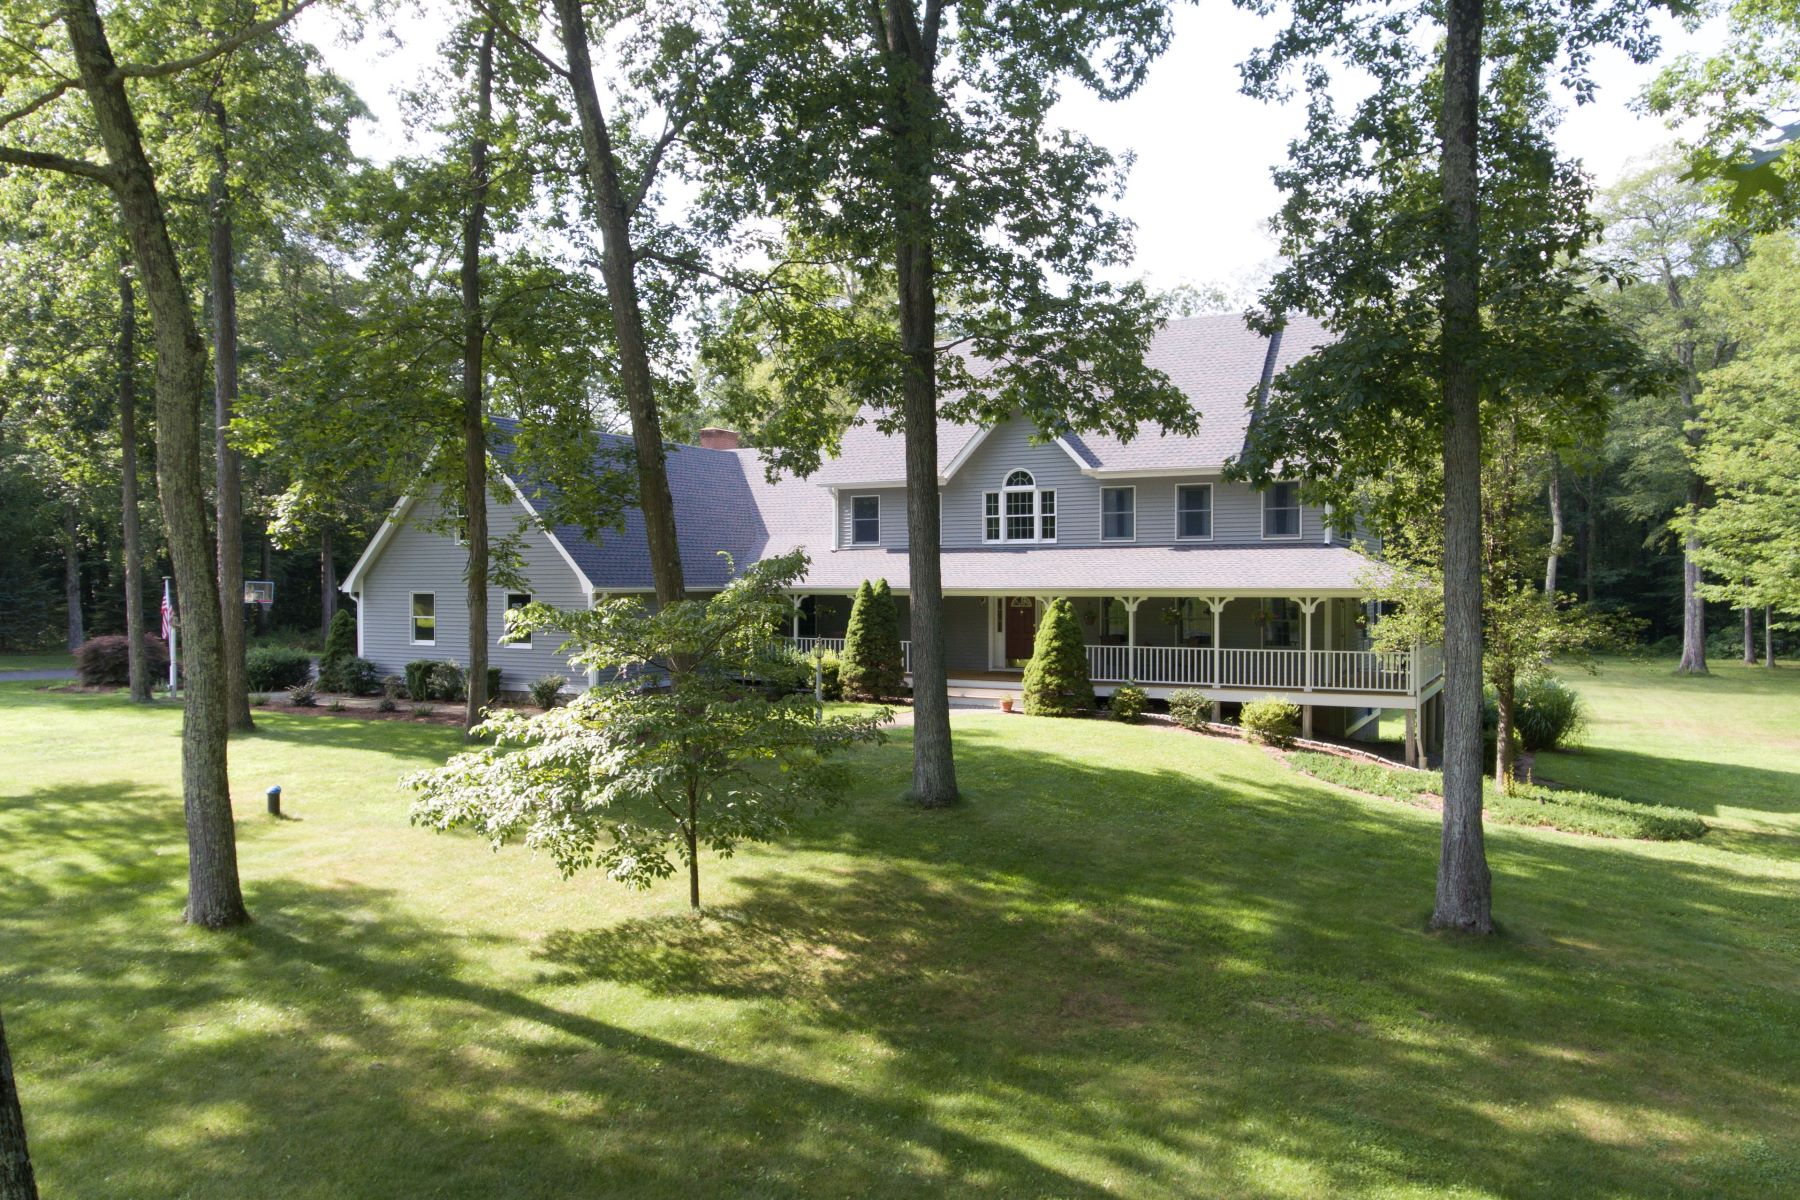 Single Family Home for Sale at Custom Built Home 73 Wolf Pit Drive Southbury, Connecticut 06488 United States